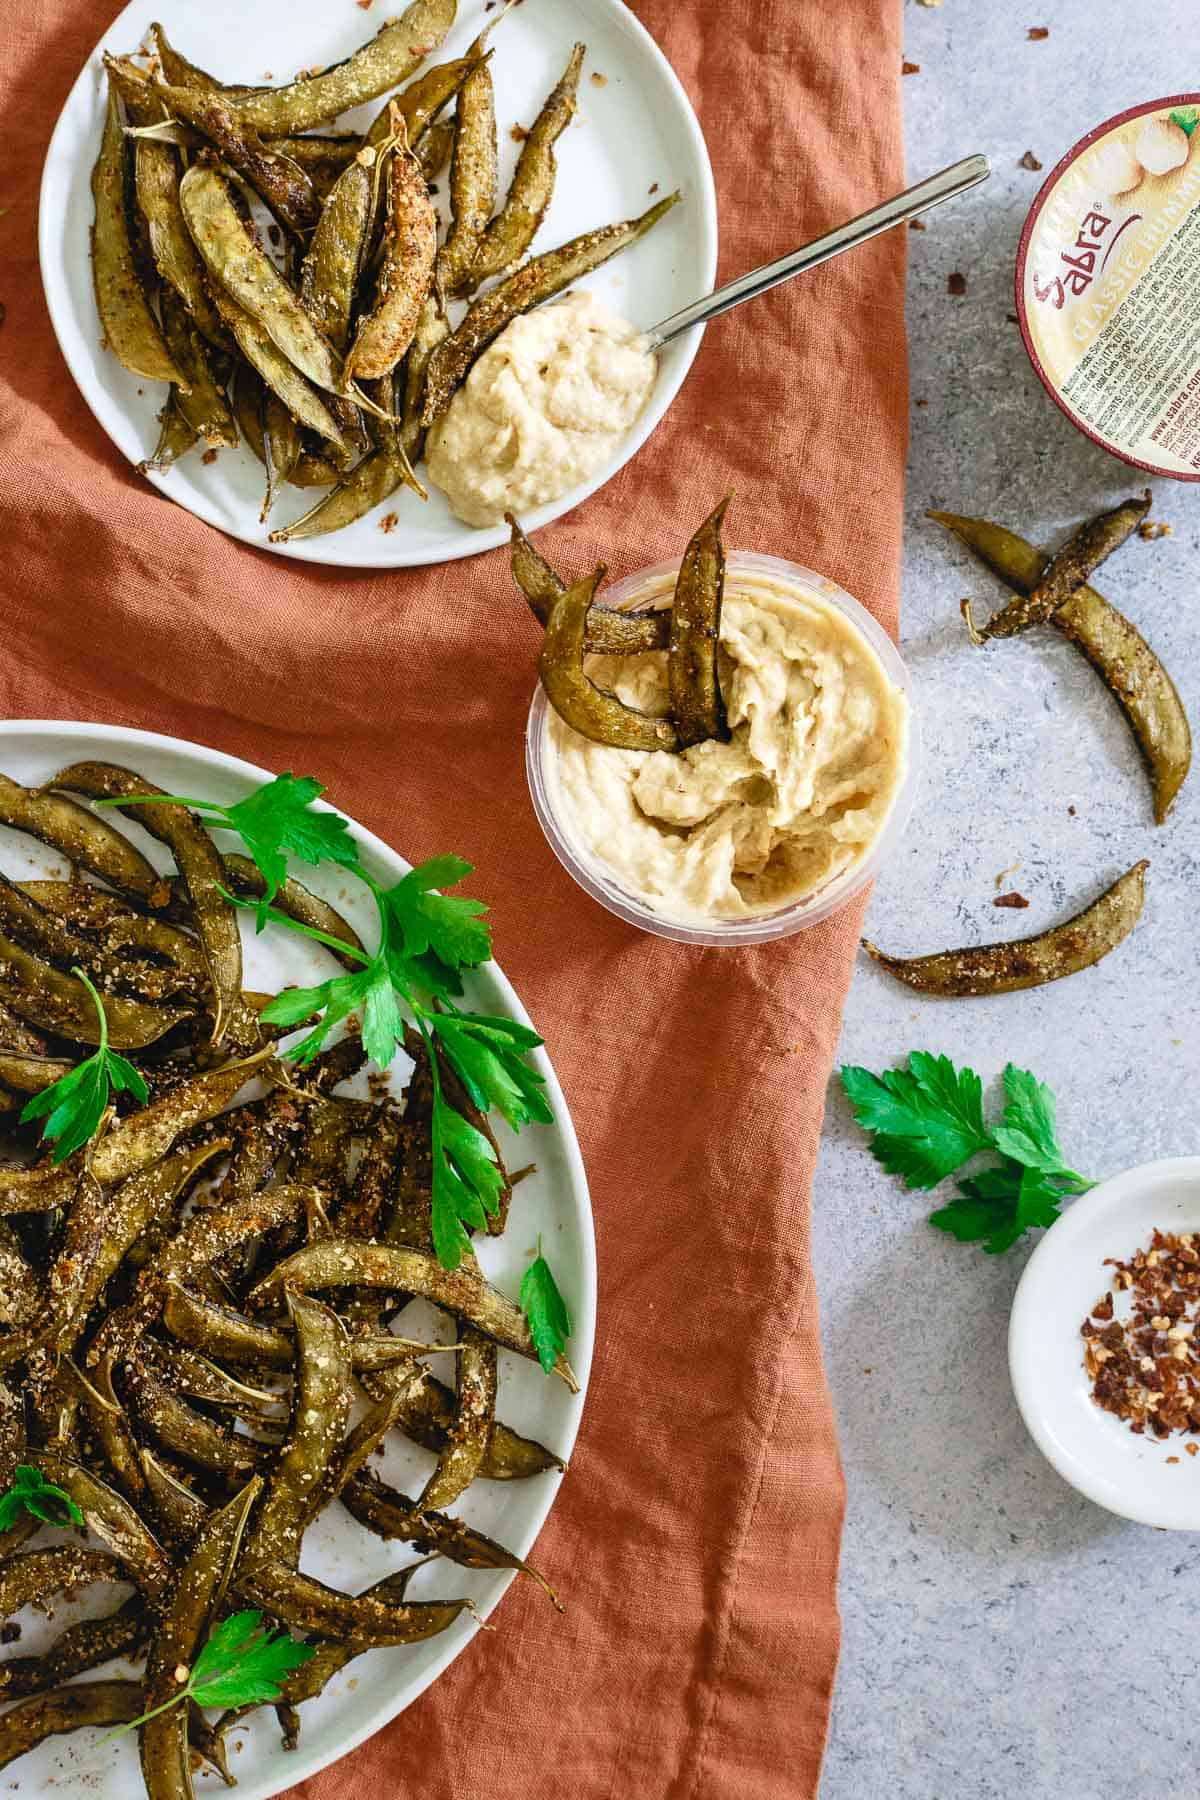 Creamy hummus and homemade snap pea crisps are a great way to keep things healthy when snacking.